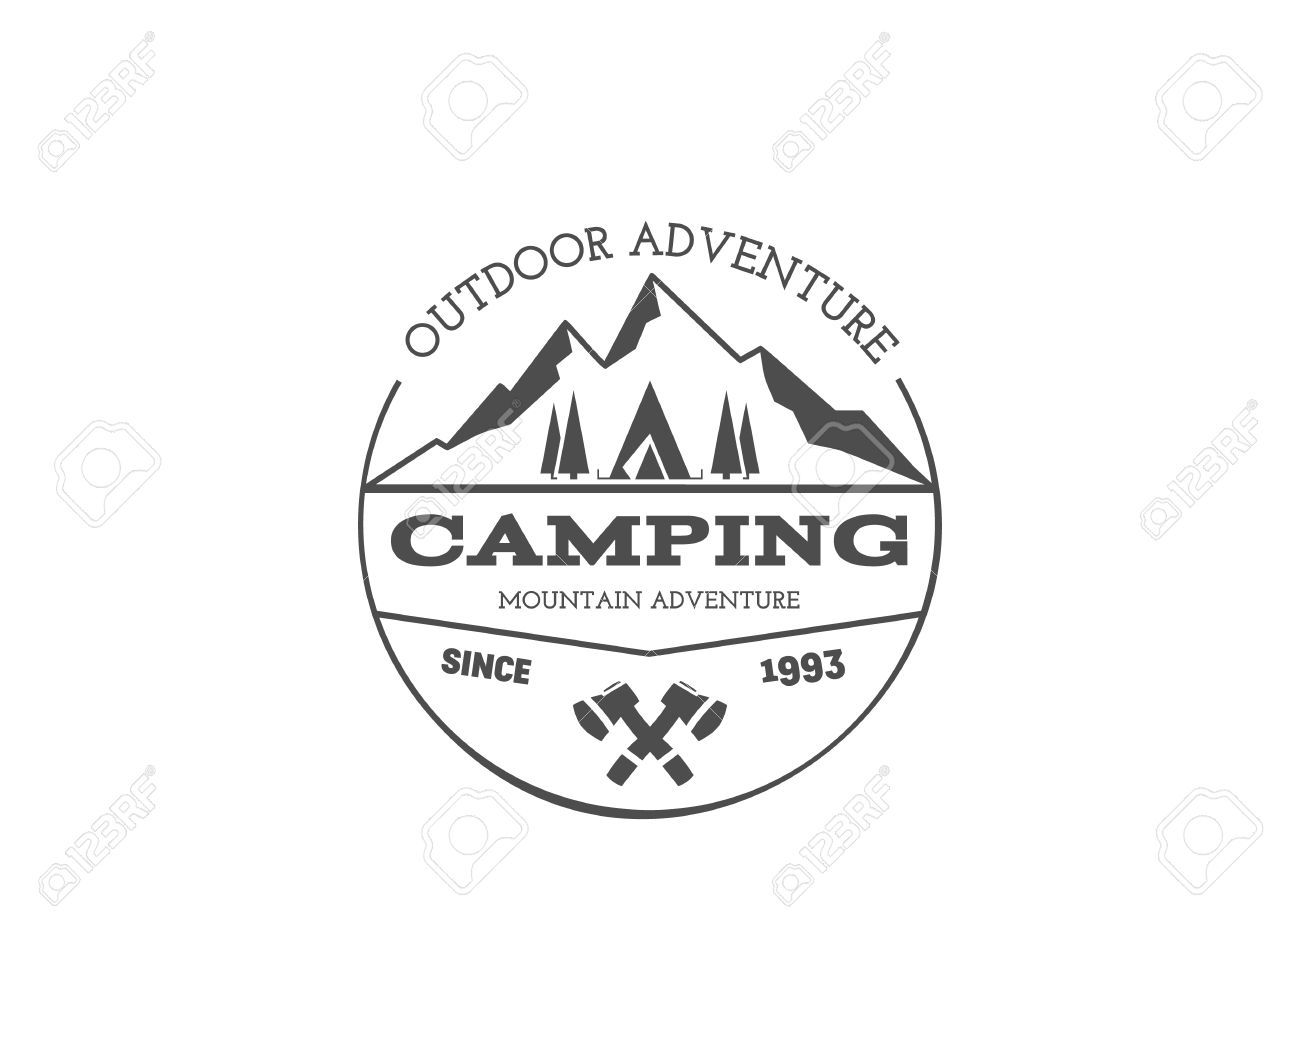 So much pileup vintage pro wrestling logos - Image Result For Retro Mountain Logo